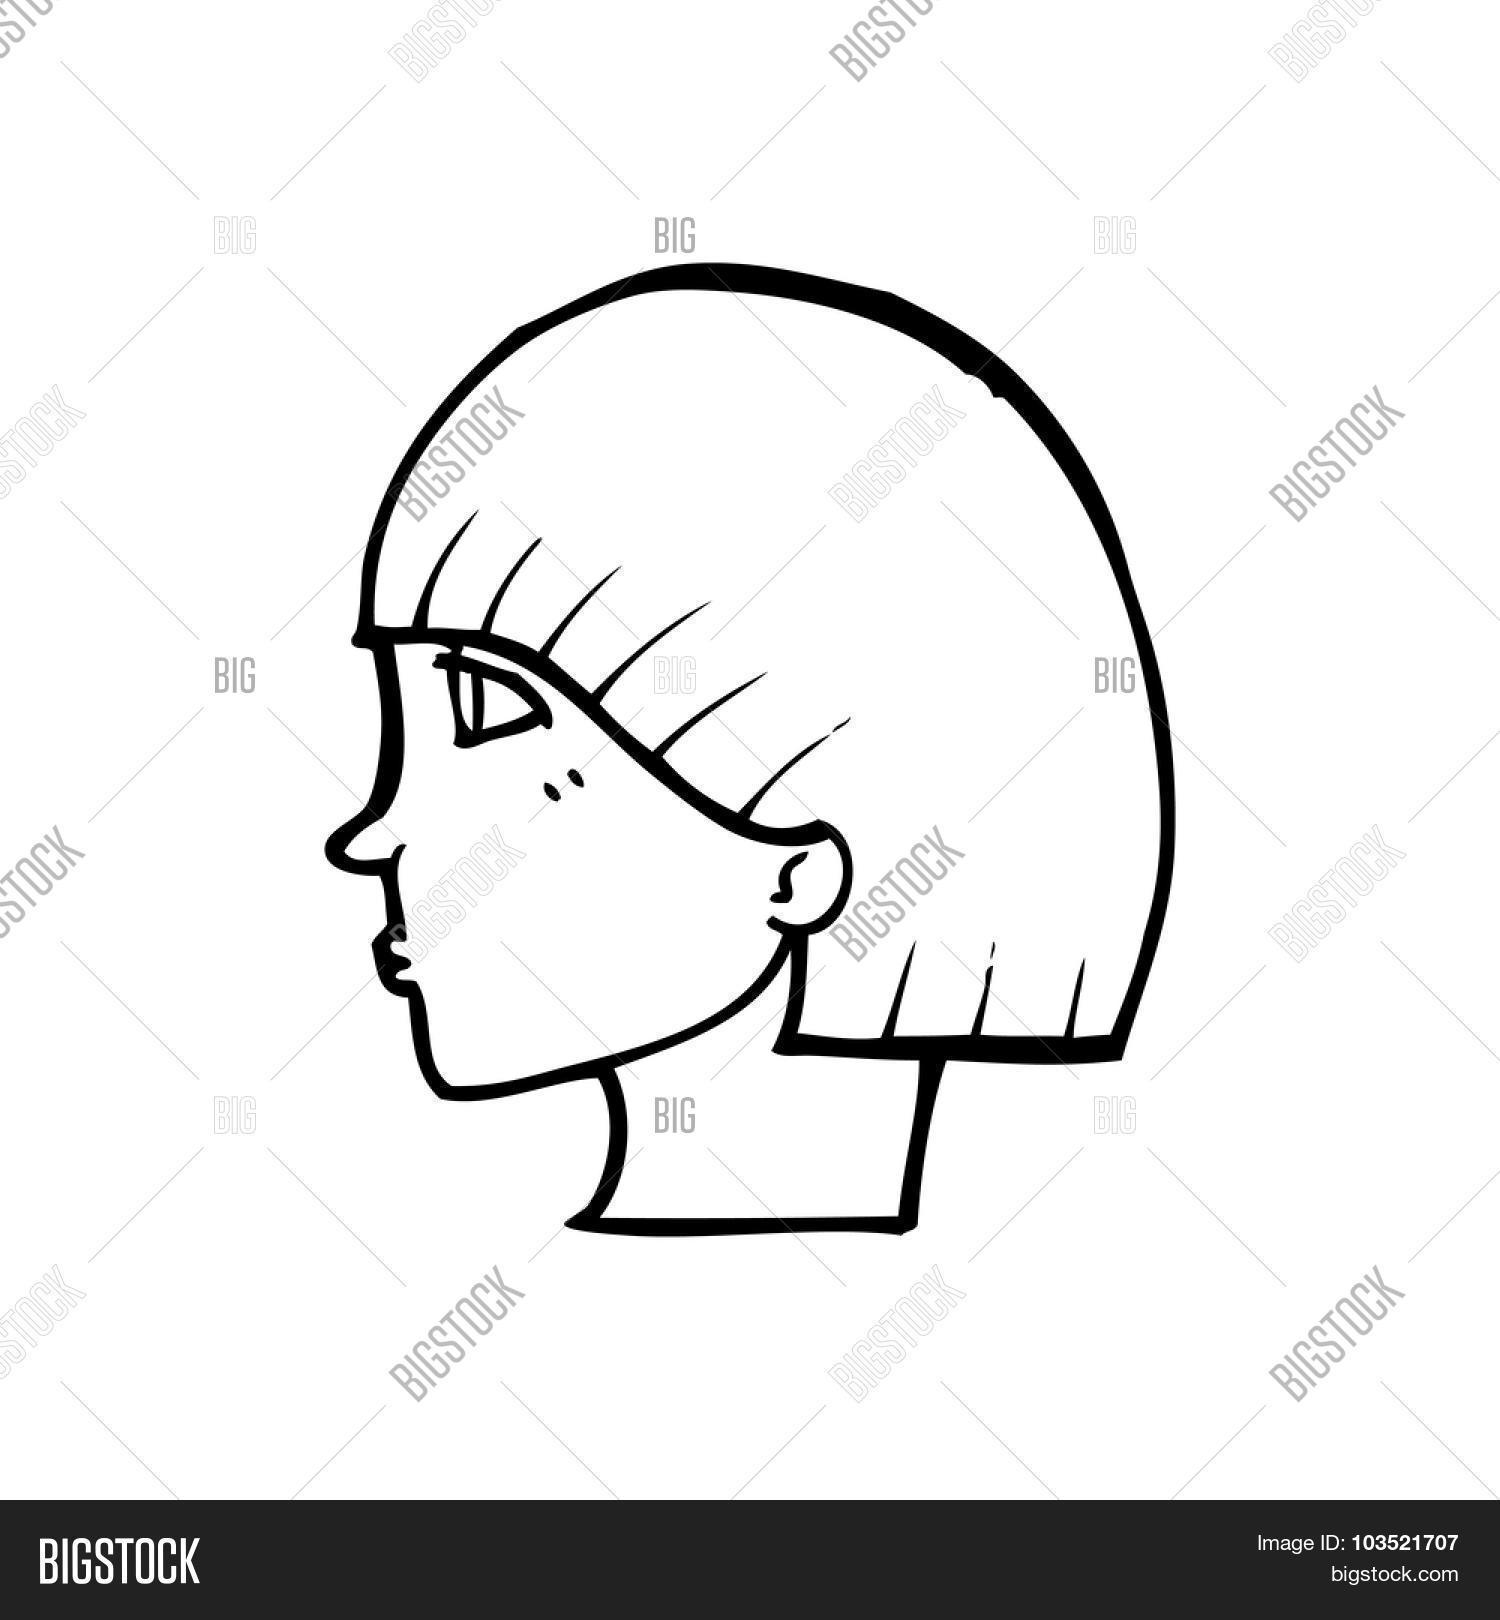 Line Drawing Of Face Profile : Simple black white line drawing vector photo bigstock